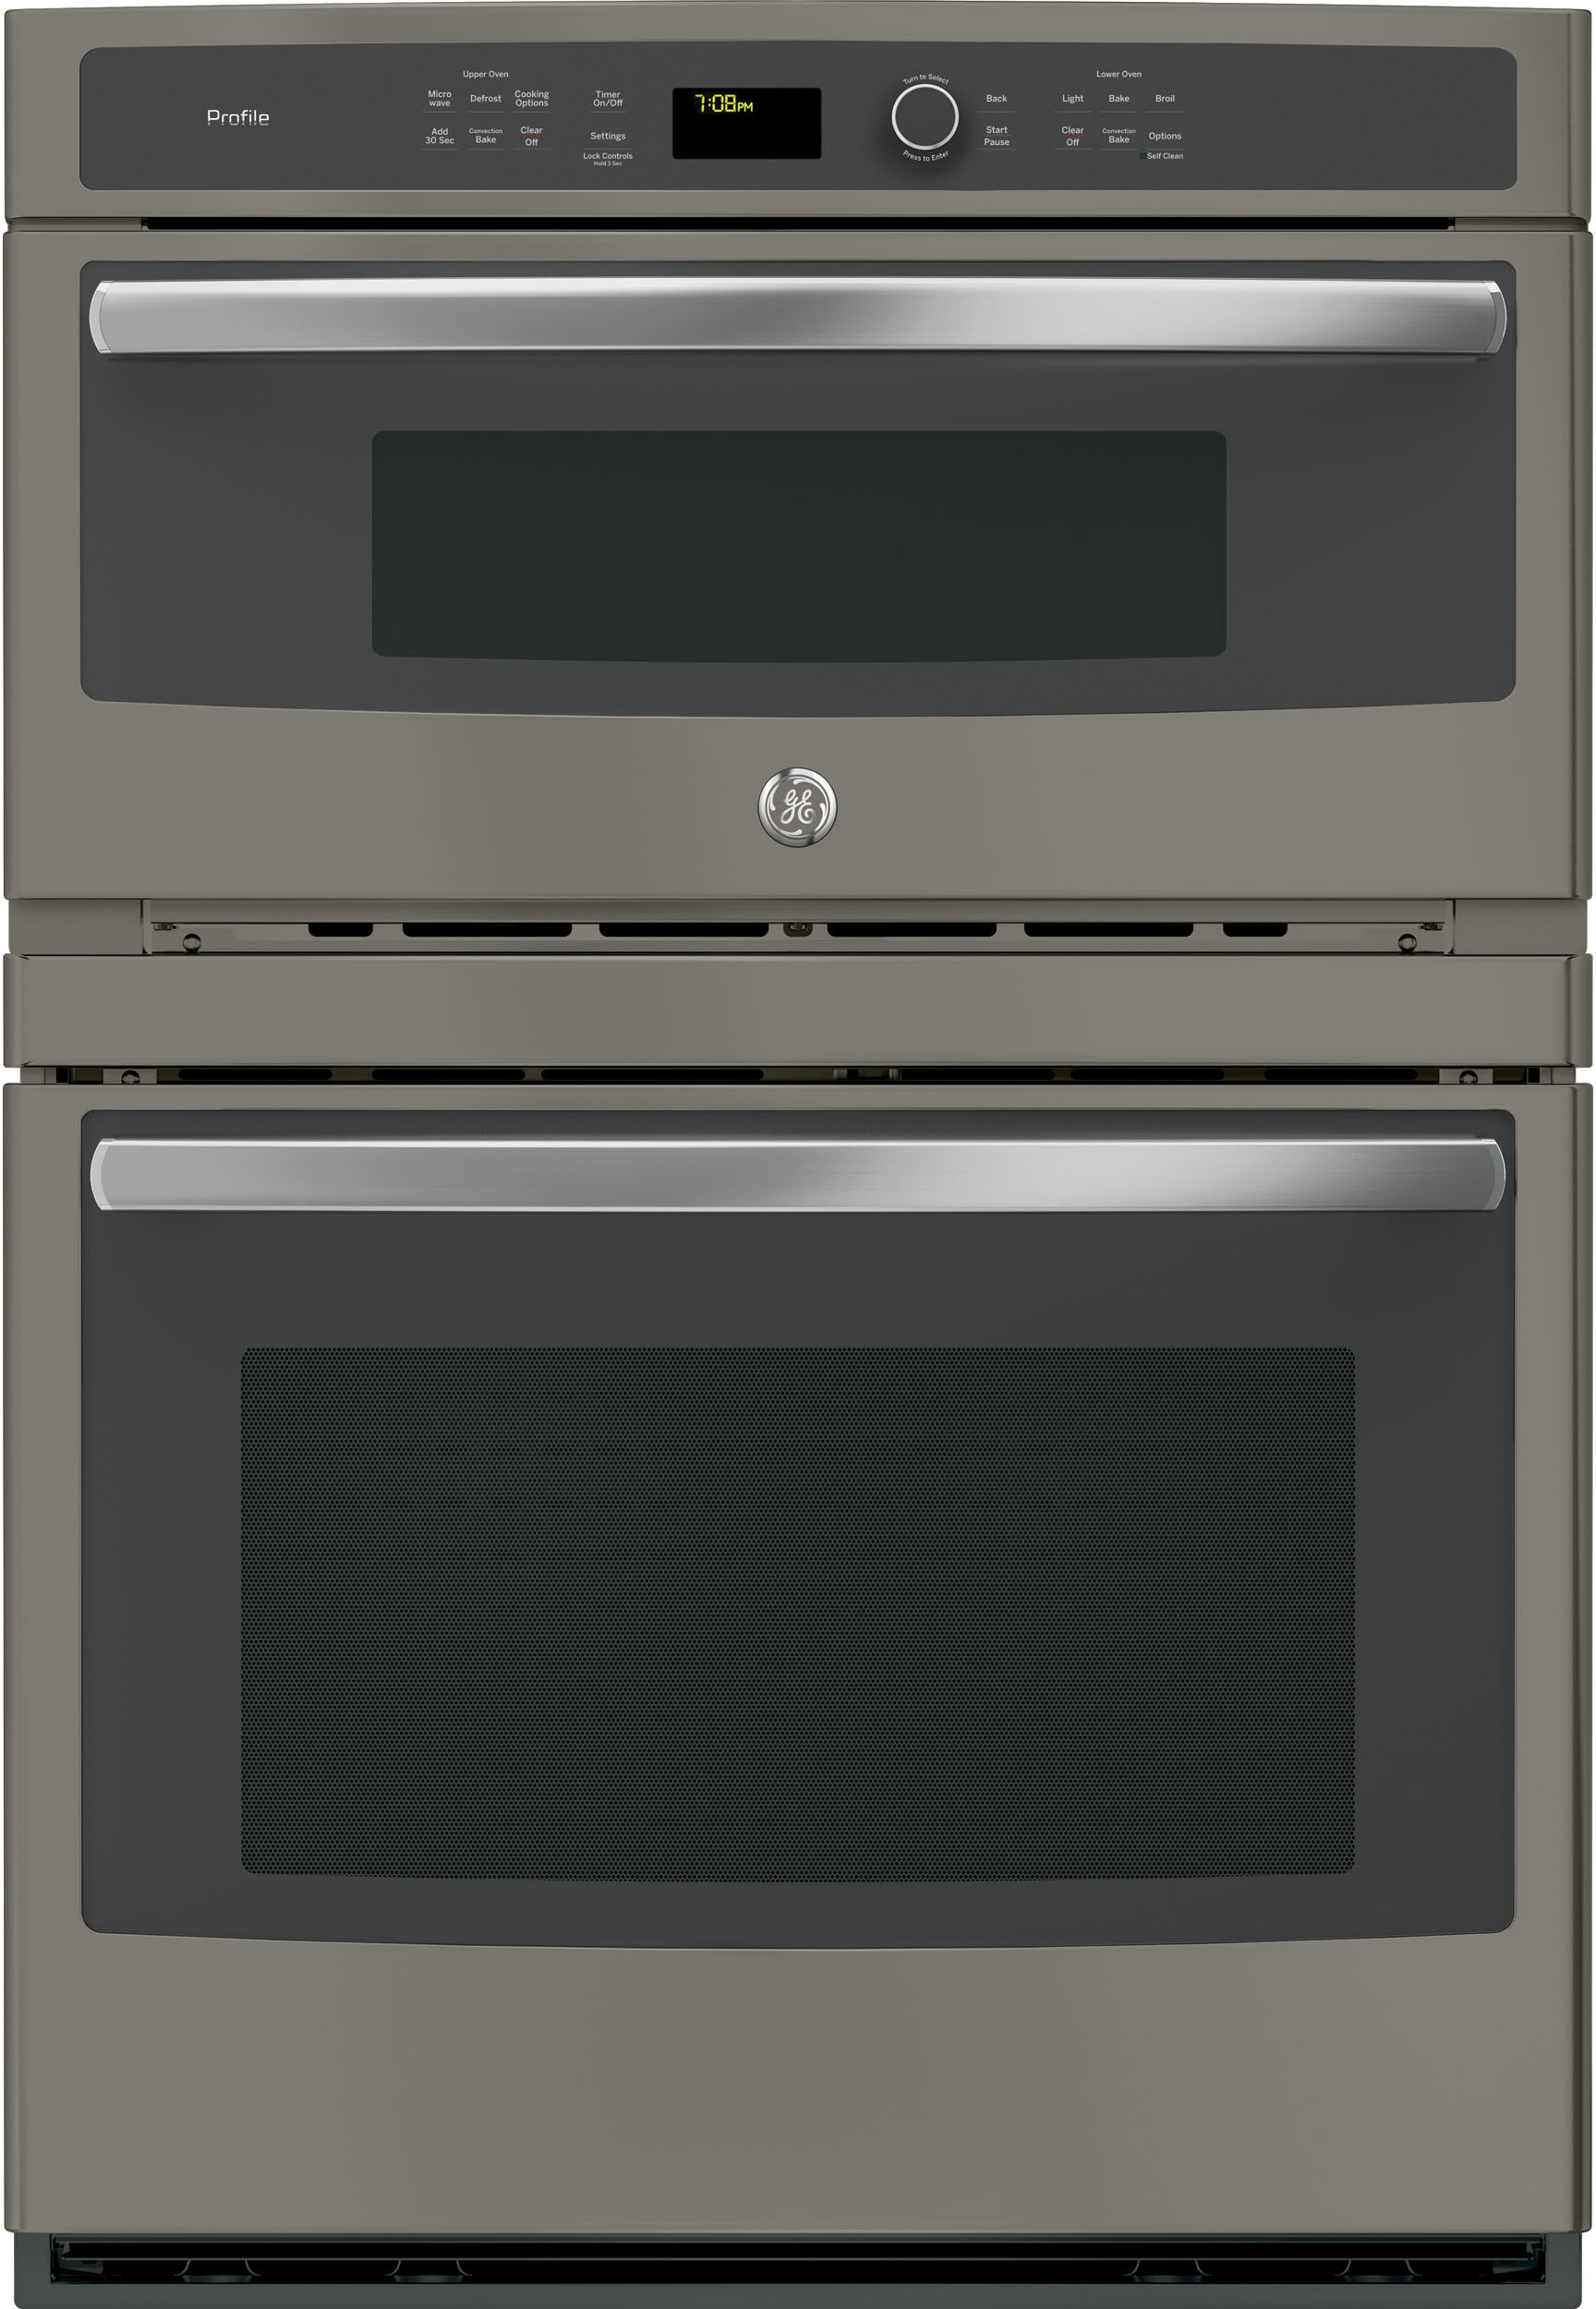 Ge Pt7800ekes 30 Inch Combination Wall Oven With True European Convection Meat Probe Proof Mode Warm 5 0 Cu Ft Capacity 1 7 Microwave